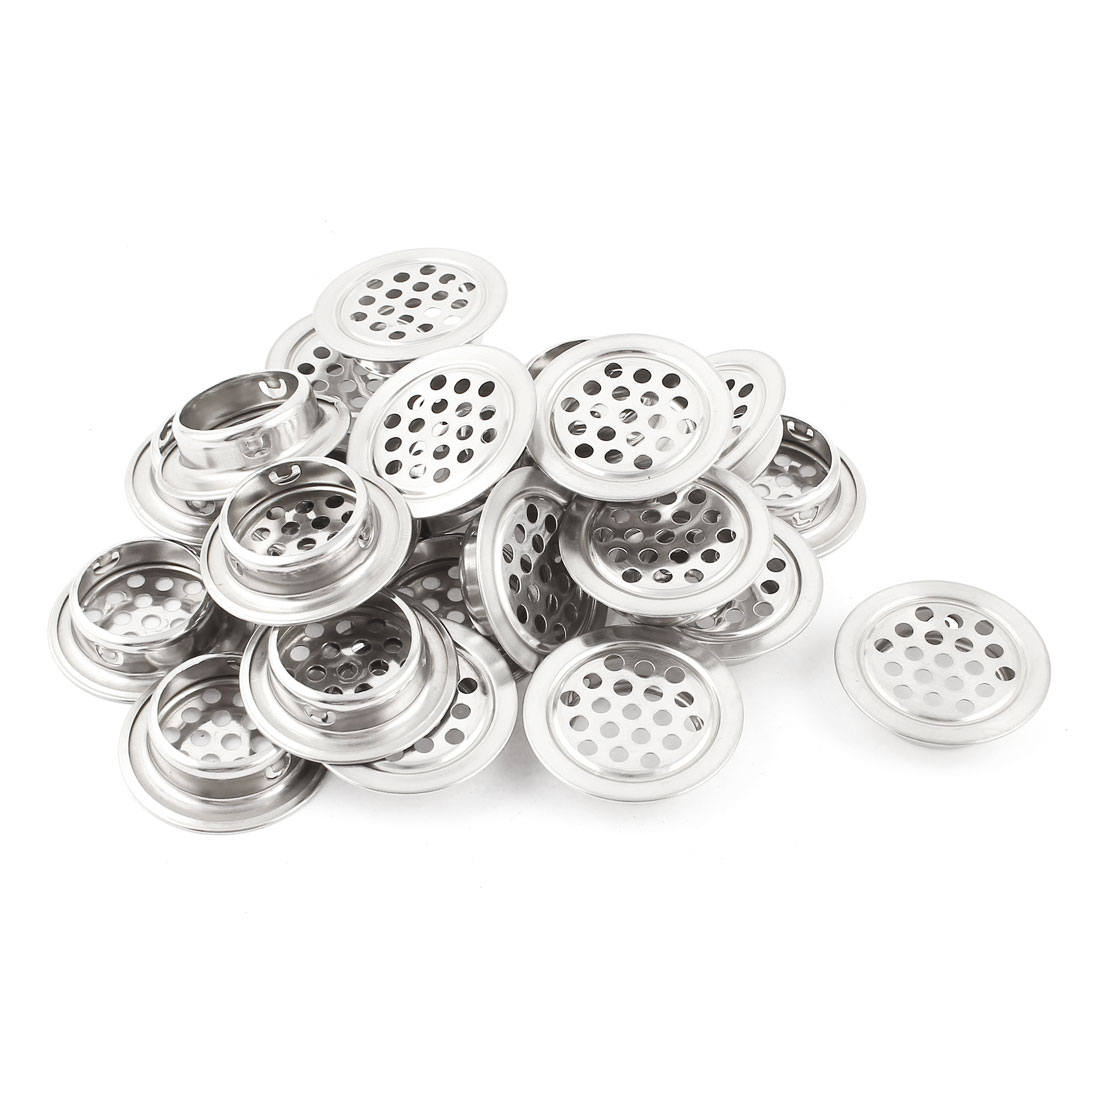 24 Pcs Silver Tone Stainless Steel Perforated Mesh Cabinet Air Vents Mini Louvers 25mm